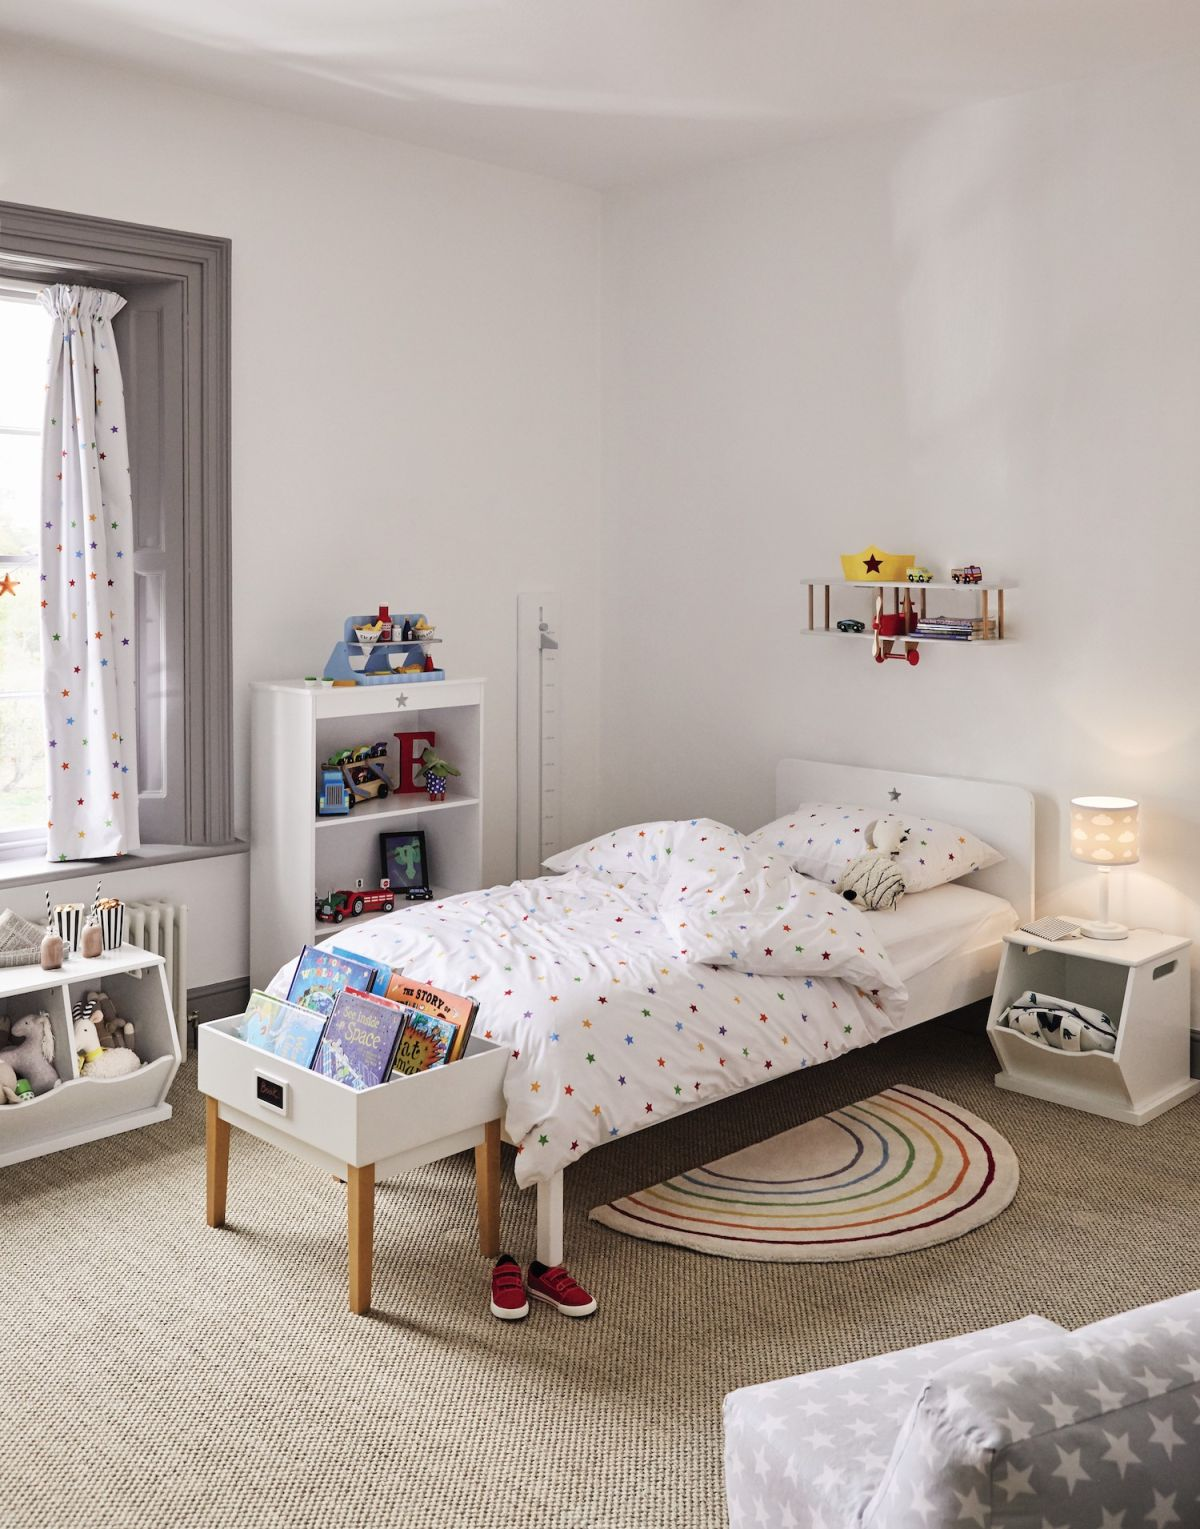 Boy Bedroom Ideas For Small Rooms 10 Chic Ideas For Compact Spaces Livingetc Livingetcdocument Documenttype